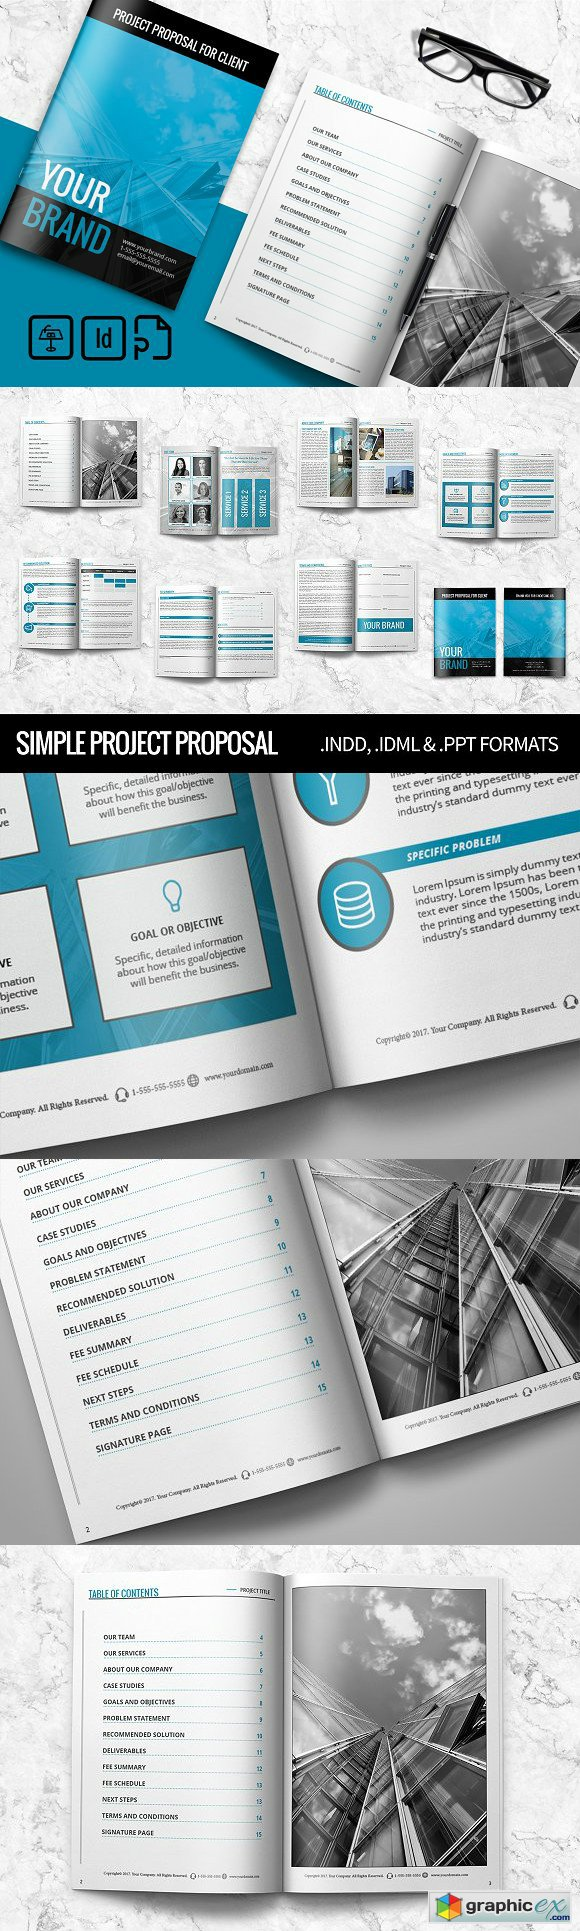 Web Design Proposal v2 1672215